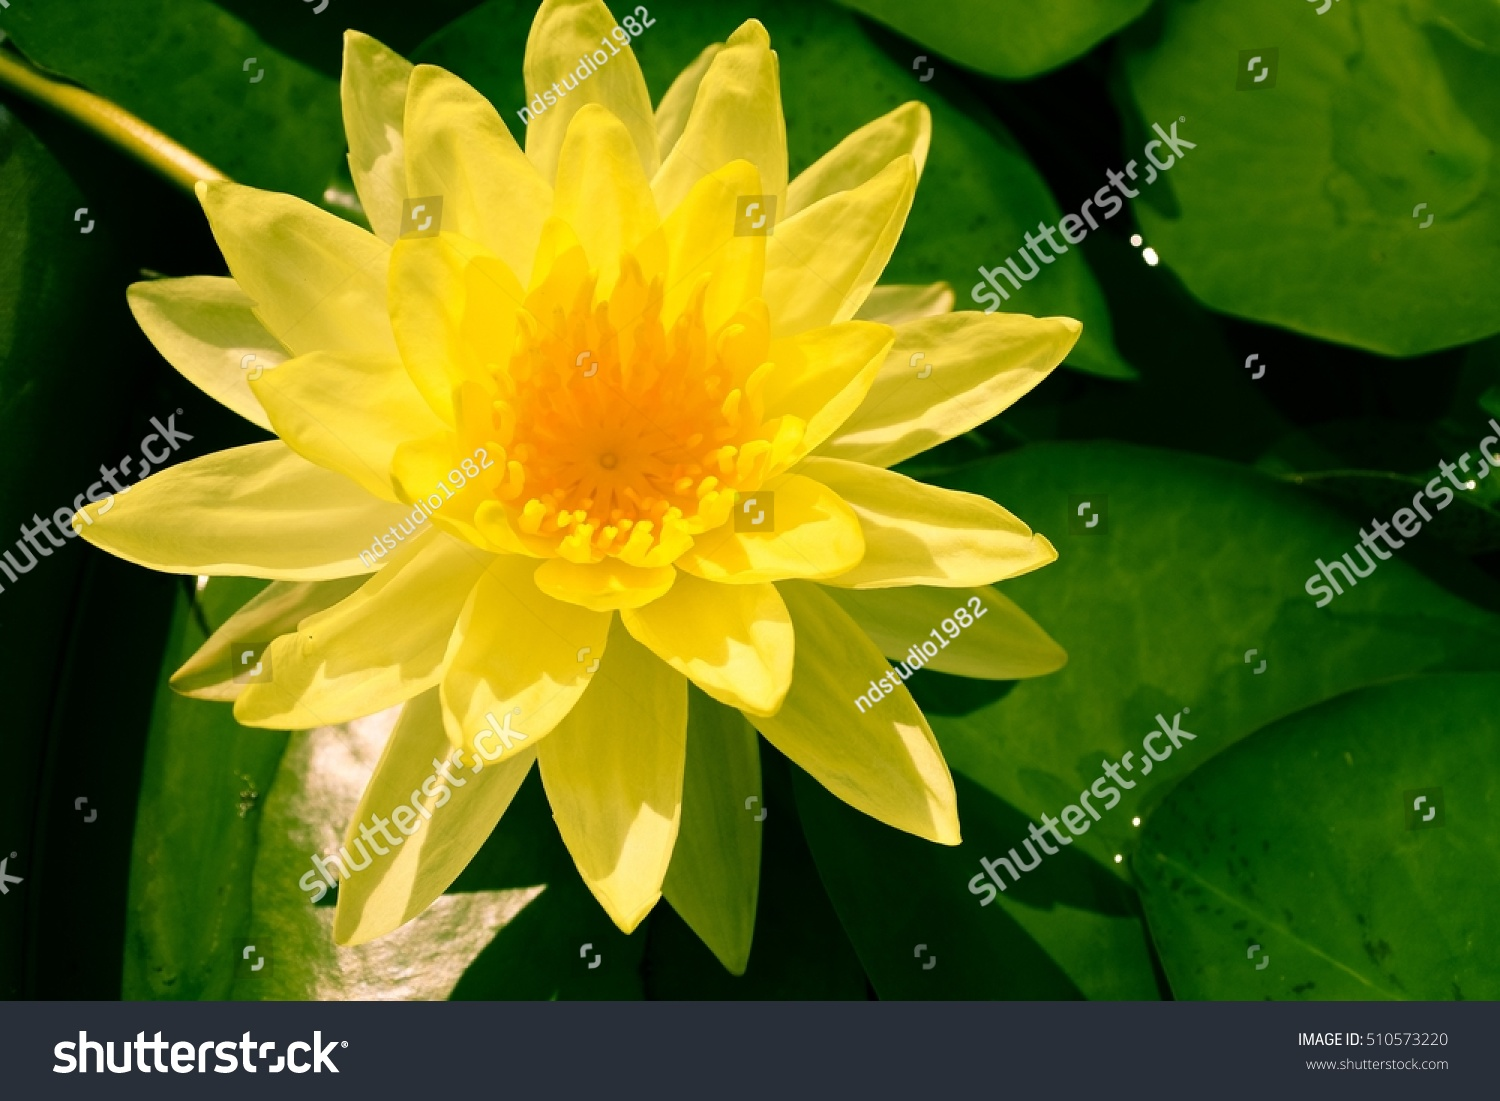 Yellow Lotus Flower With Green Leaves Backgrounds Ez Canvas